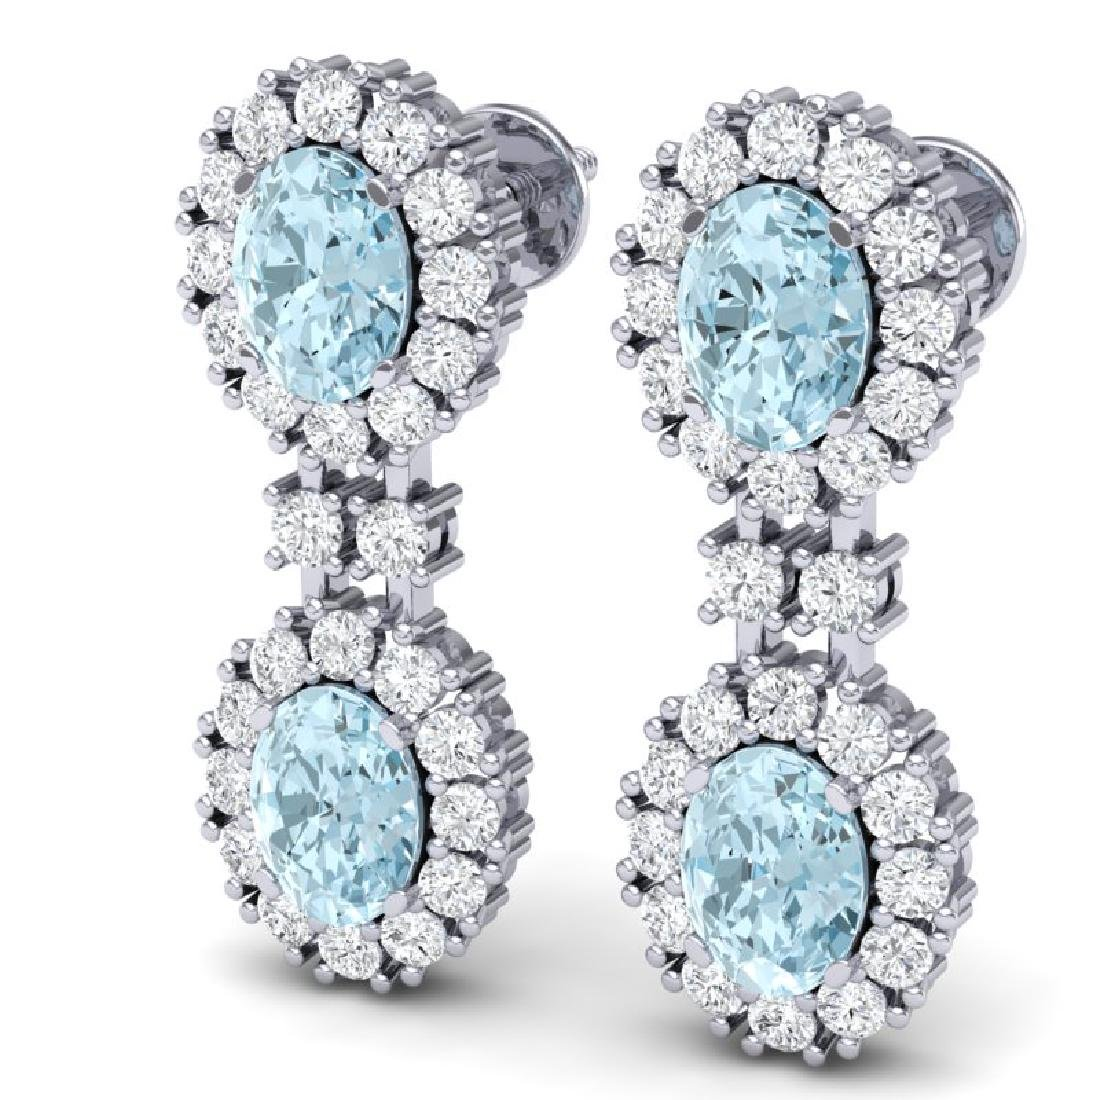 8.8 CTW Royalty Sky Topaz & VS Diamond Earrings 18K - 2